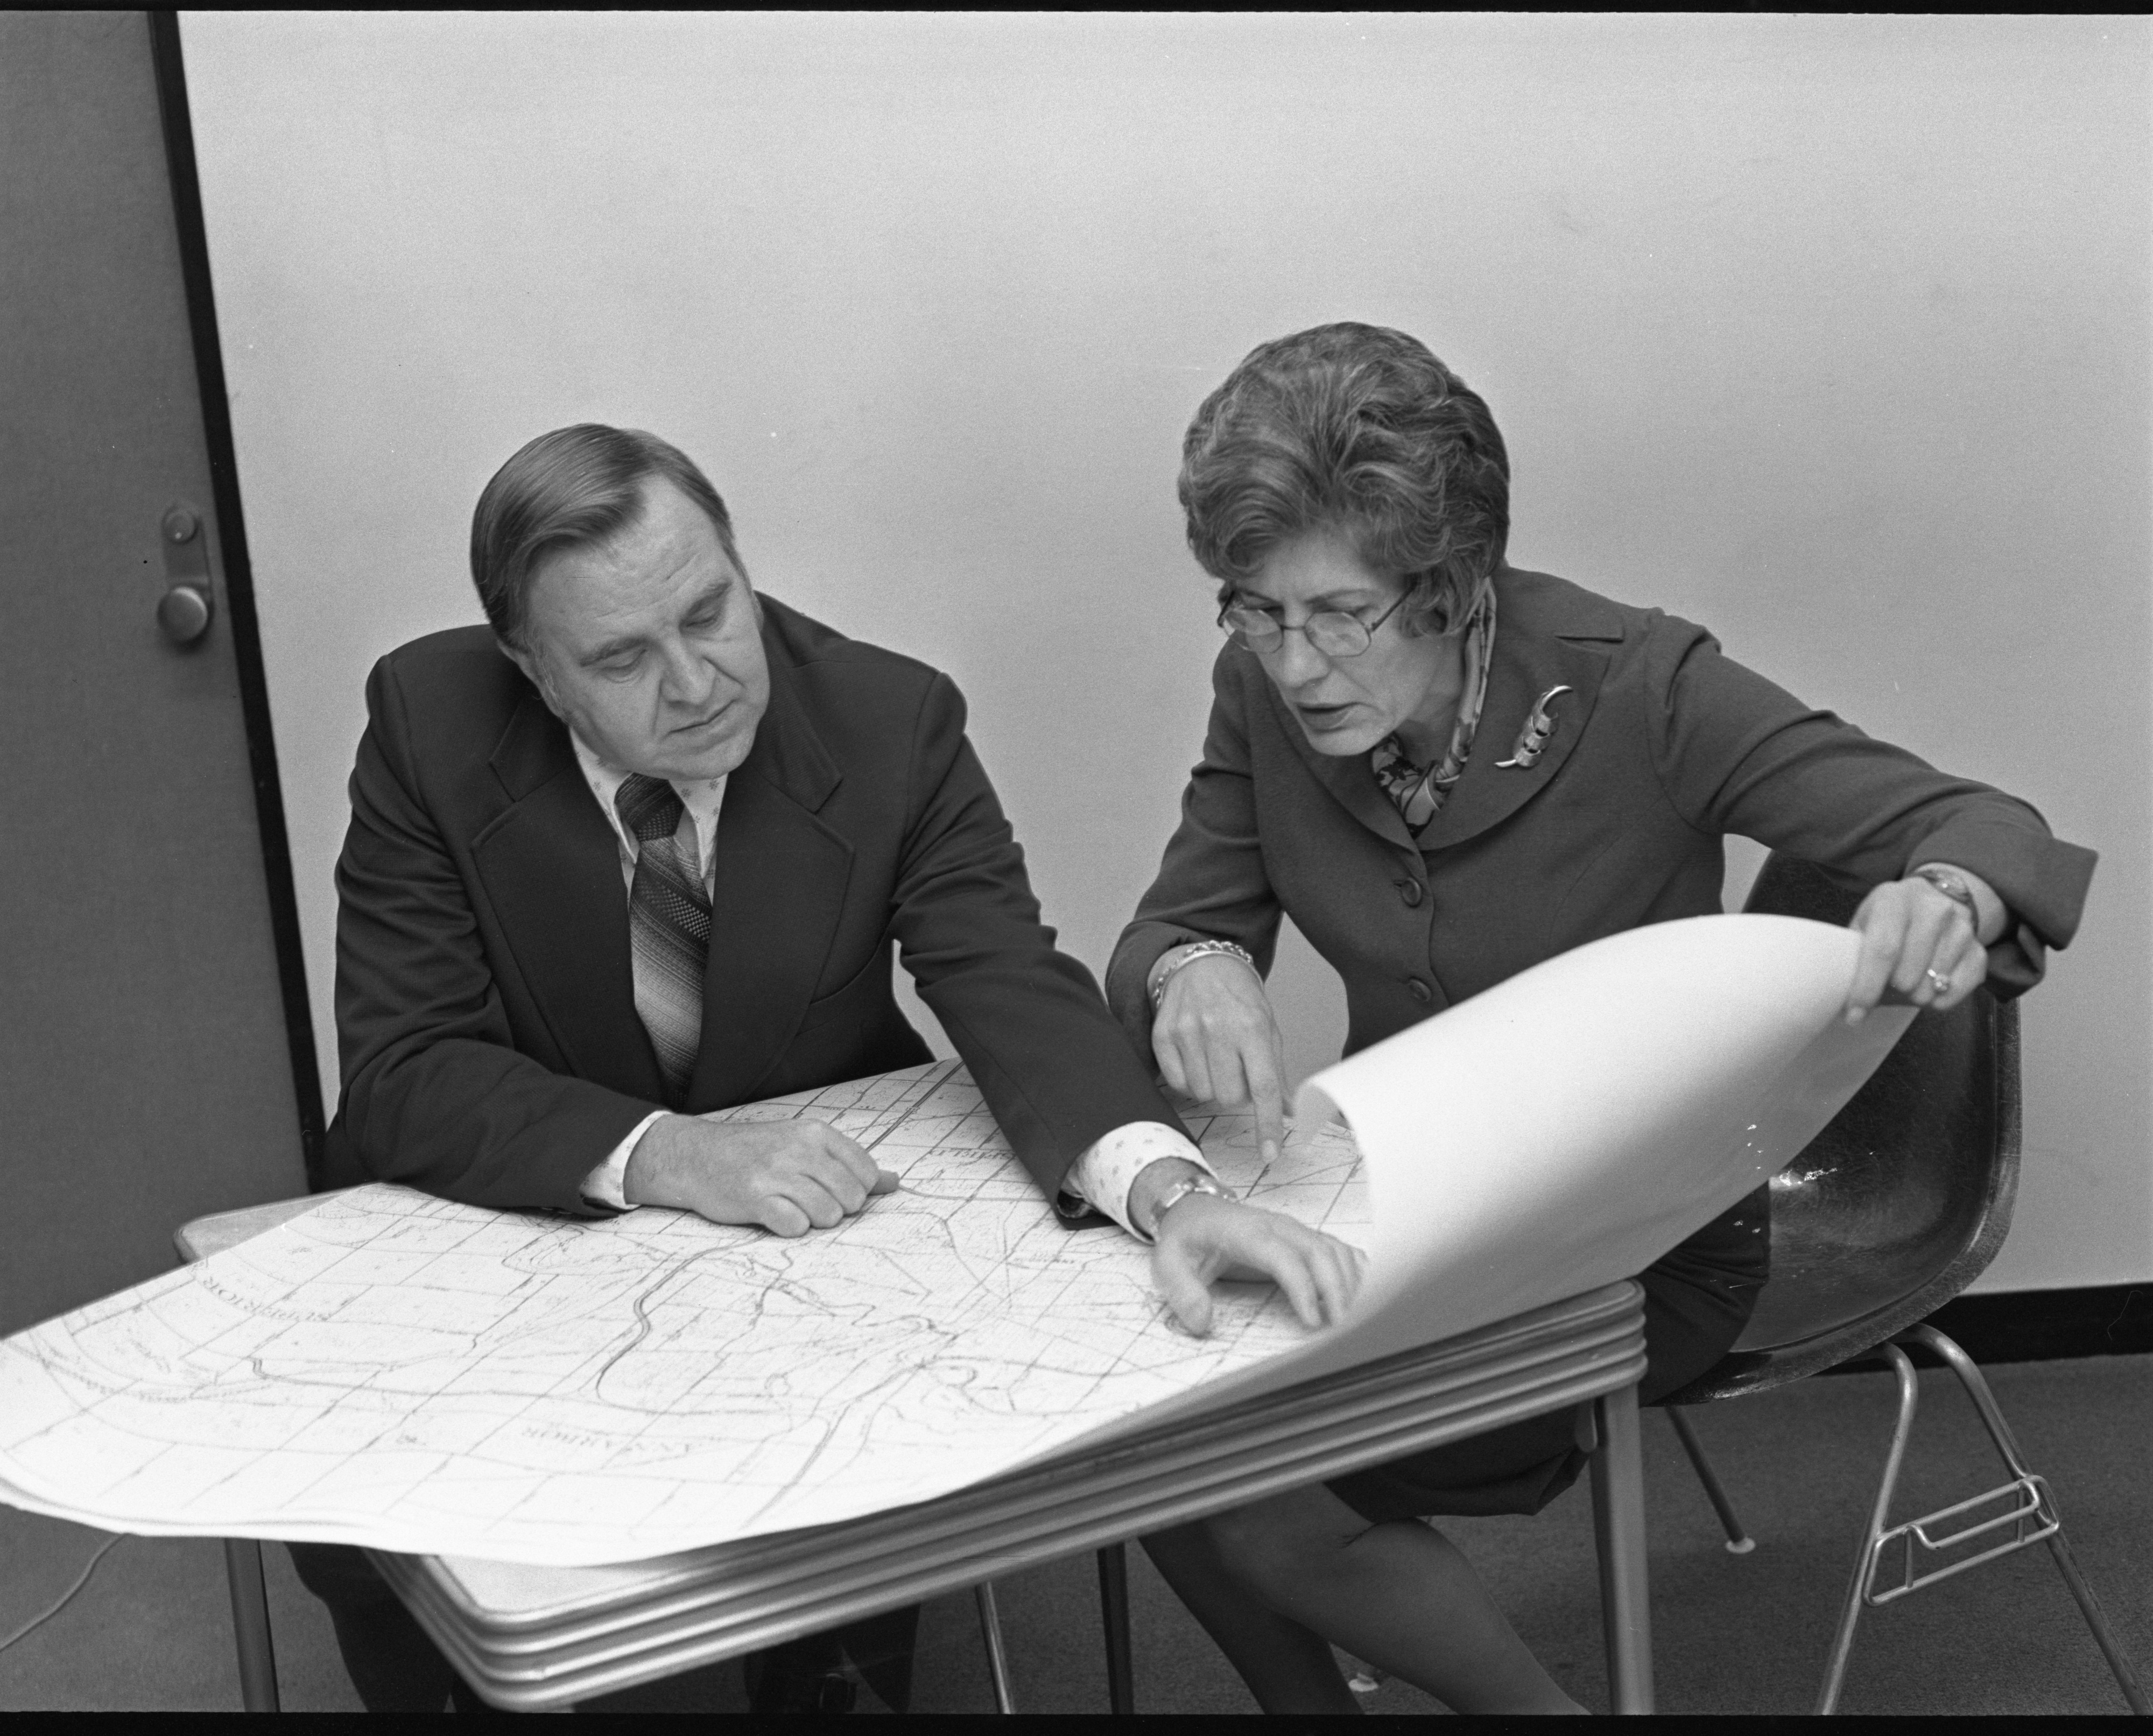 Harry Howard & Elizabeth Kummer With A Map Of Ann Arbor, January 1974 image